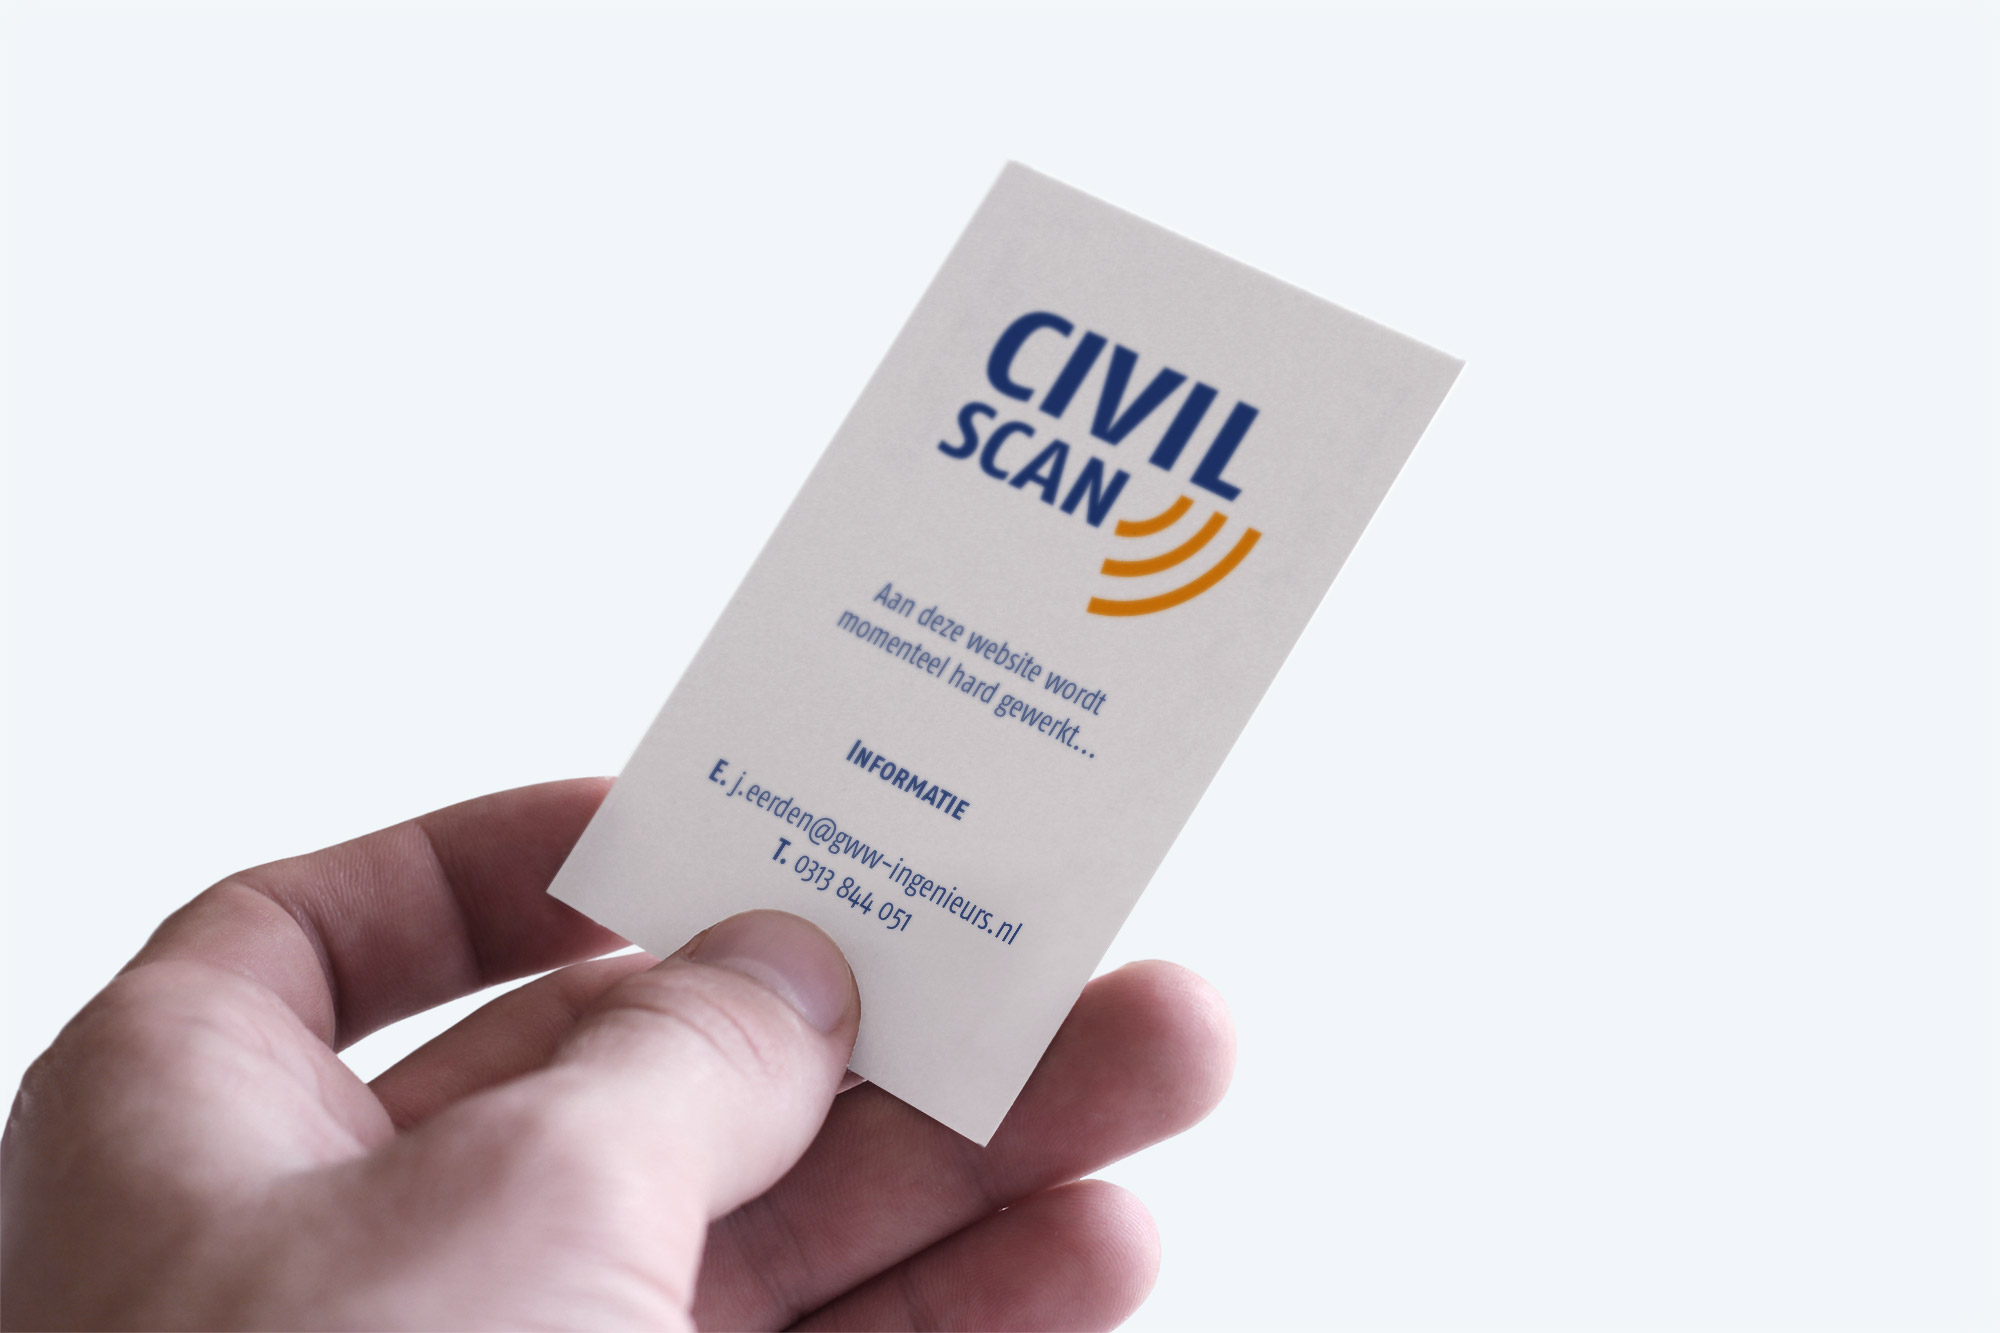 Civil Scan